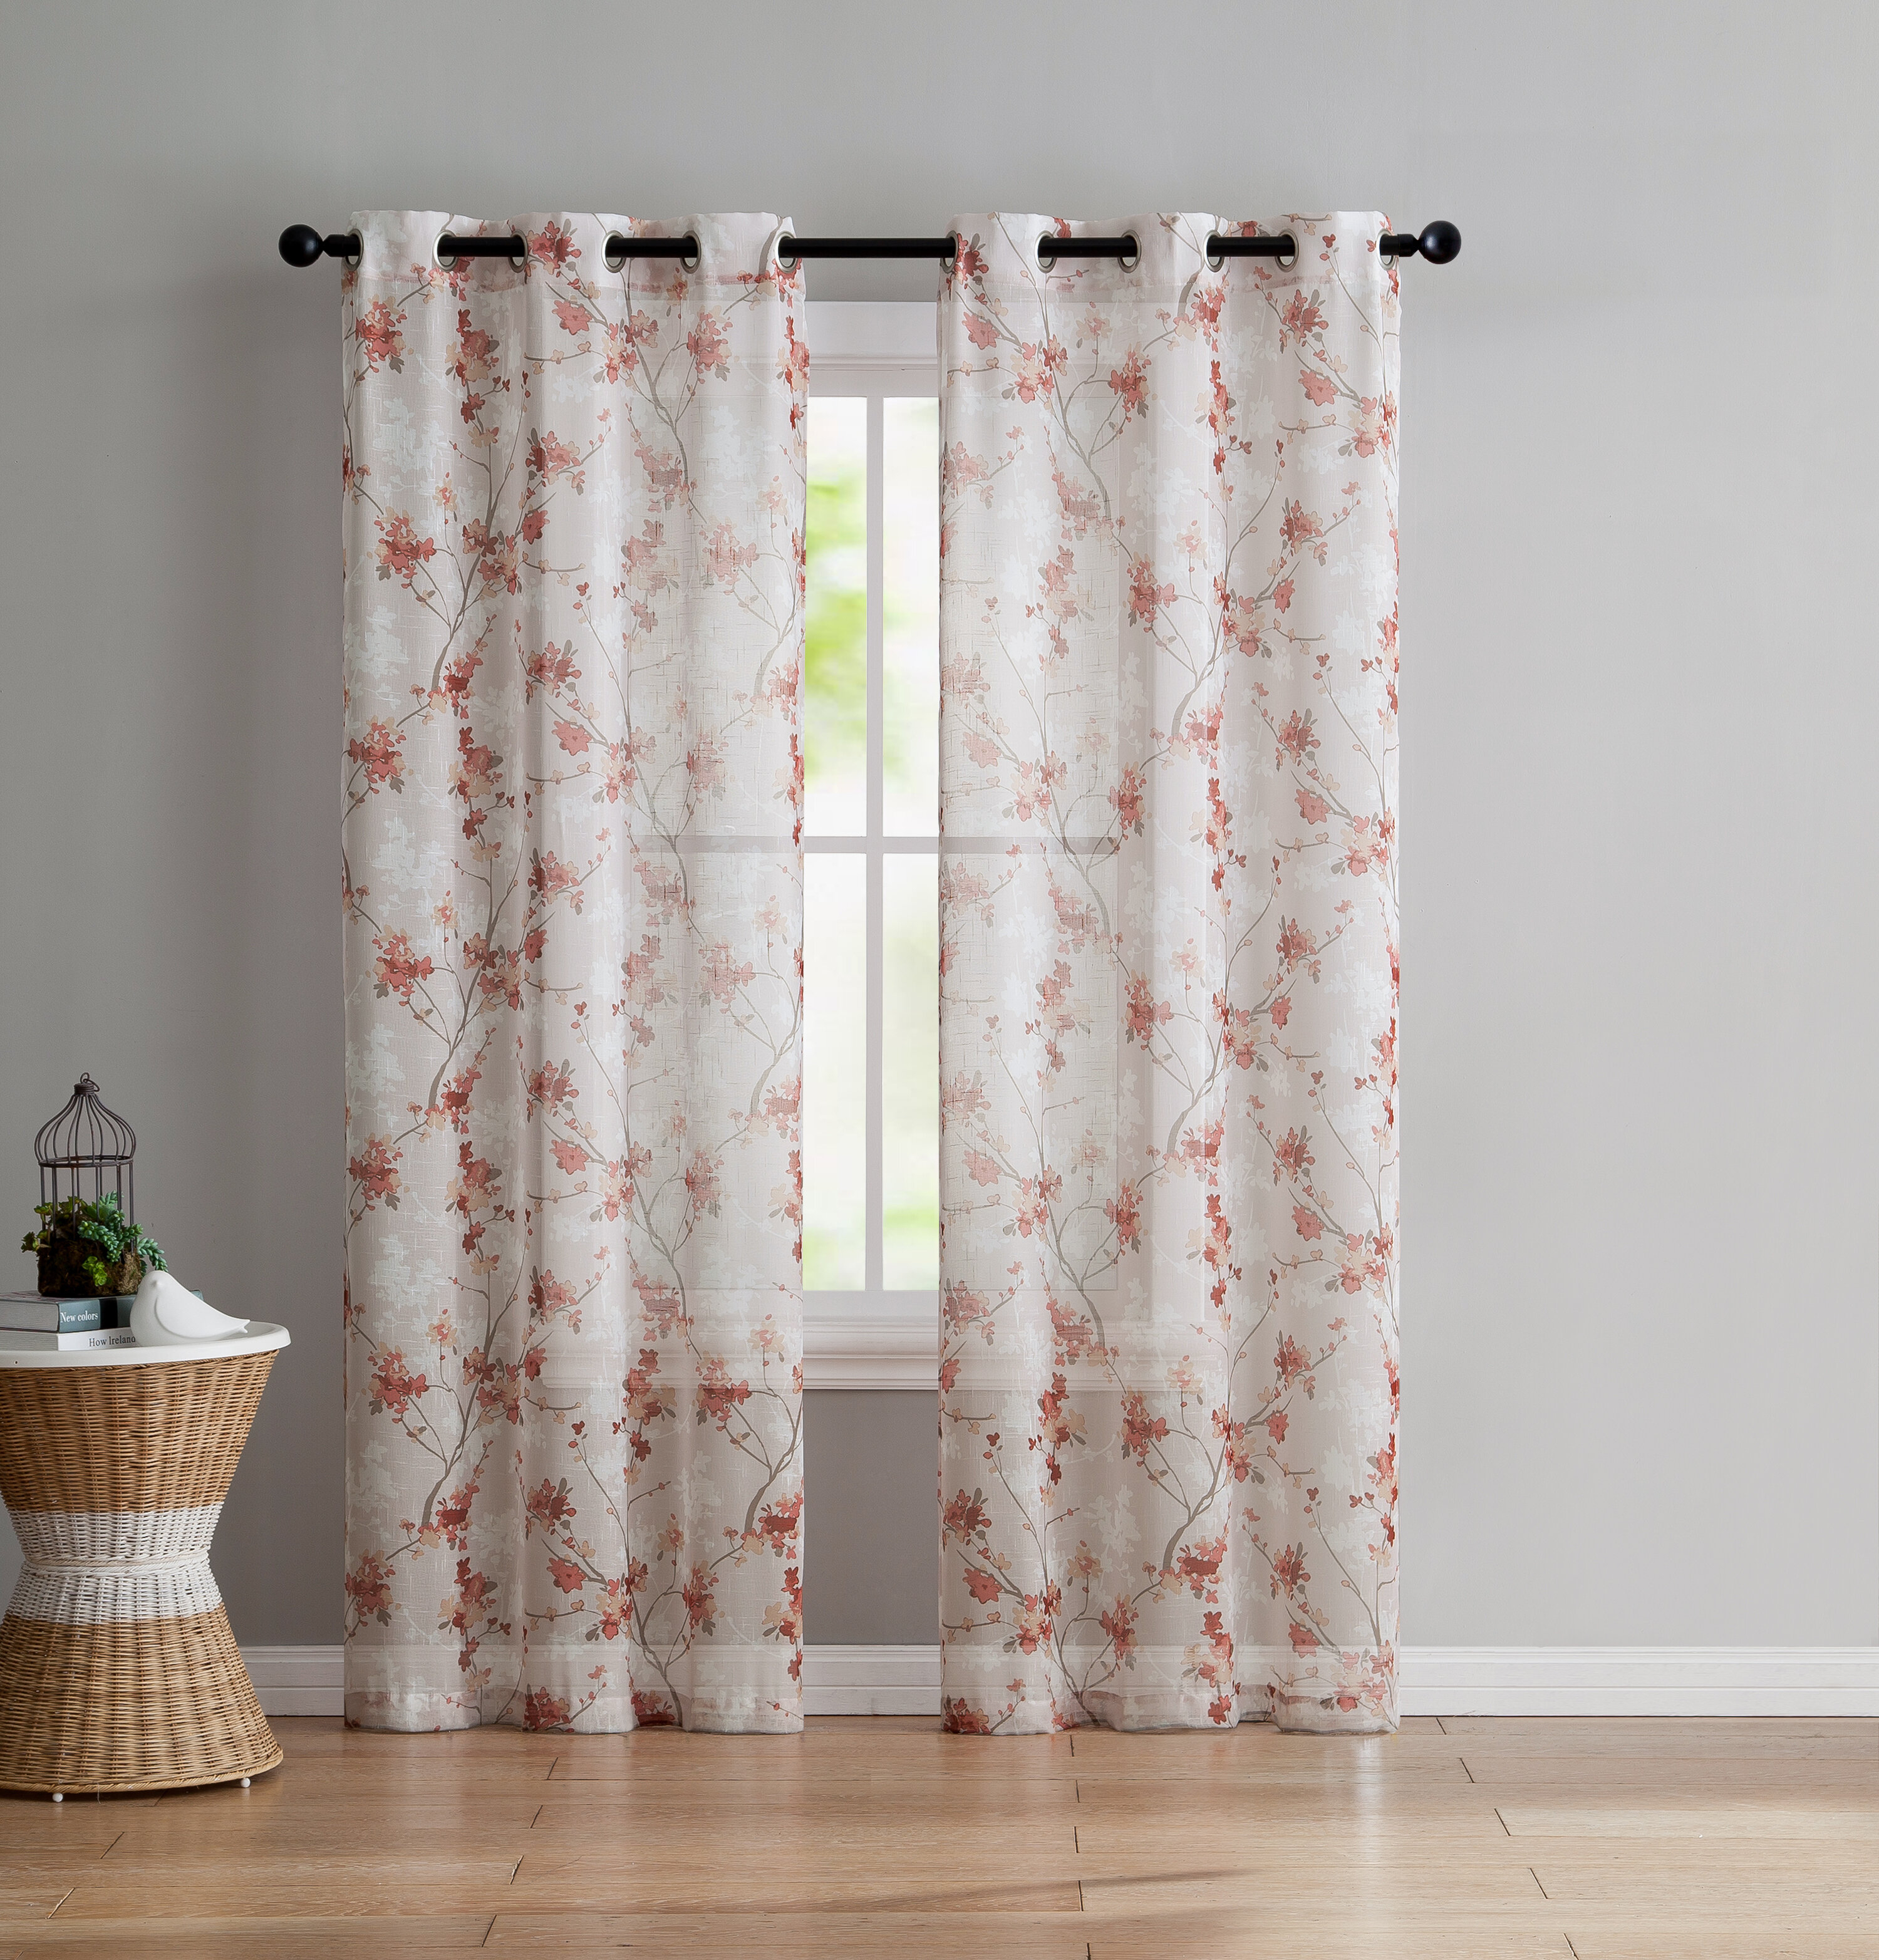 Severus Nature/floral Sheer Grommet Curtain Panels Inside Wavy Leaves Embroidered Sheer Extra Wide Grommet Curtain Panels (View 19 of 30)